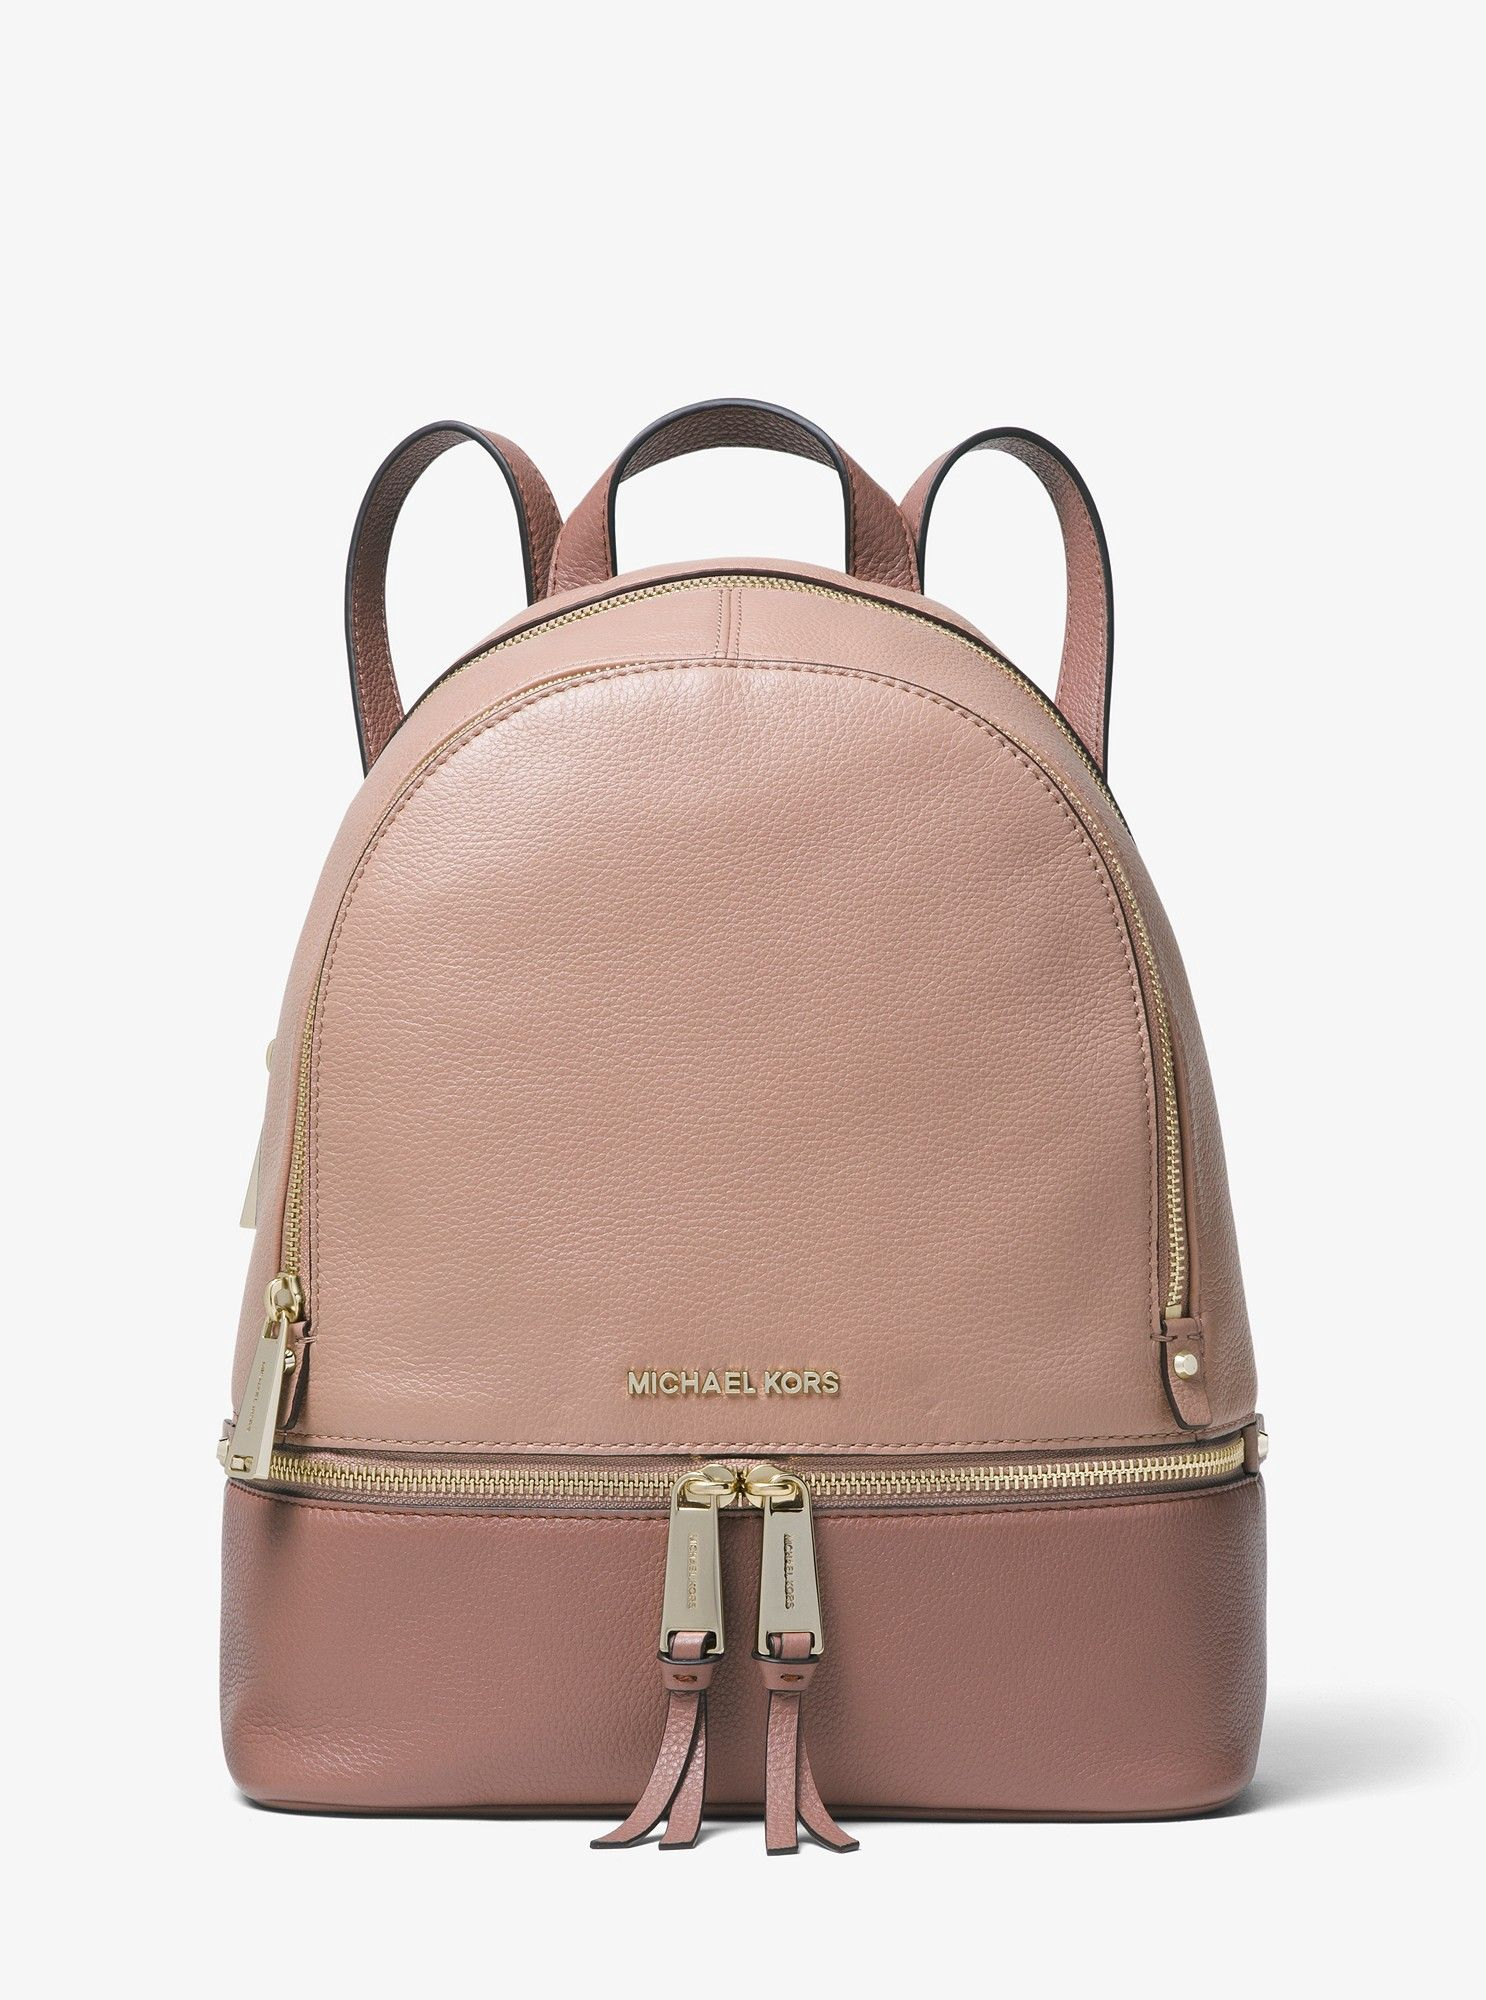 1a7917e942d2 Michael Kors Rhea Medium Color-Block Pebbled Leather Backpack - Fawn Dstyrse